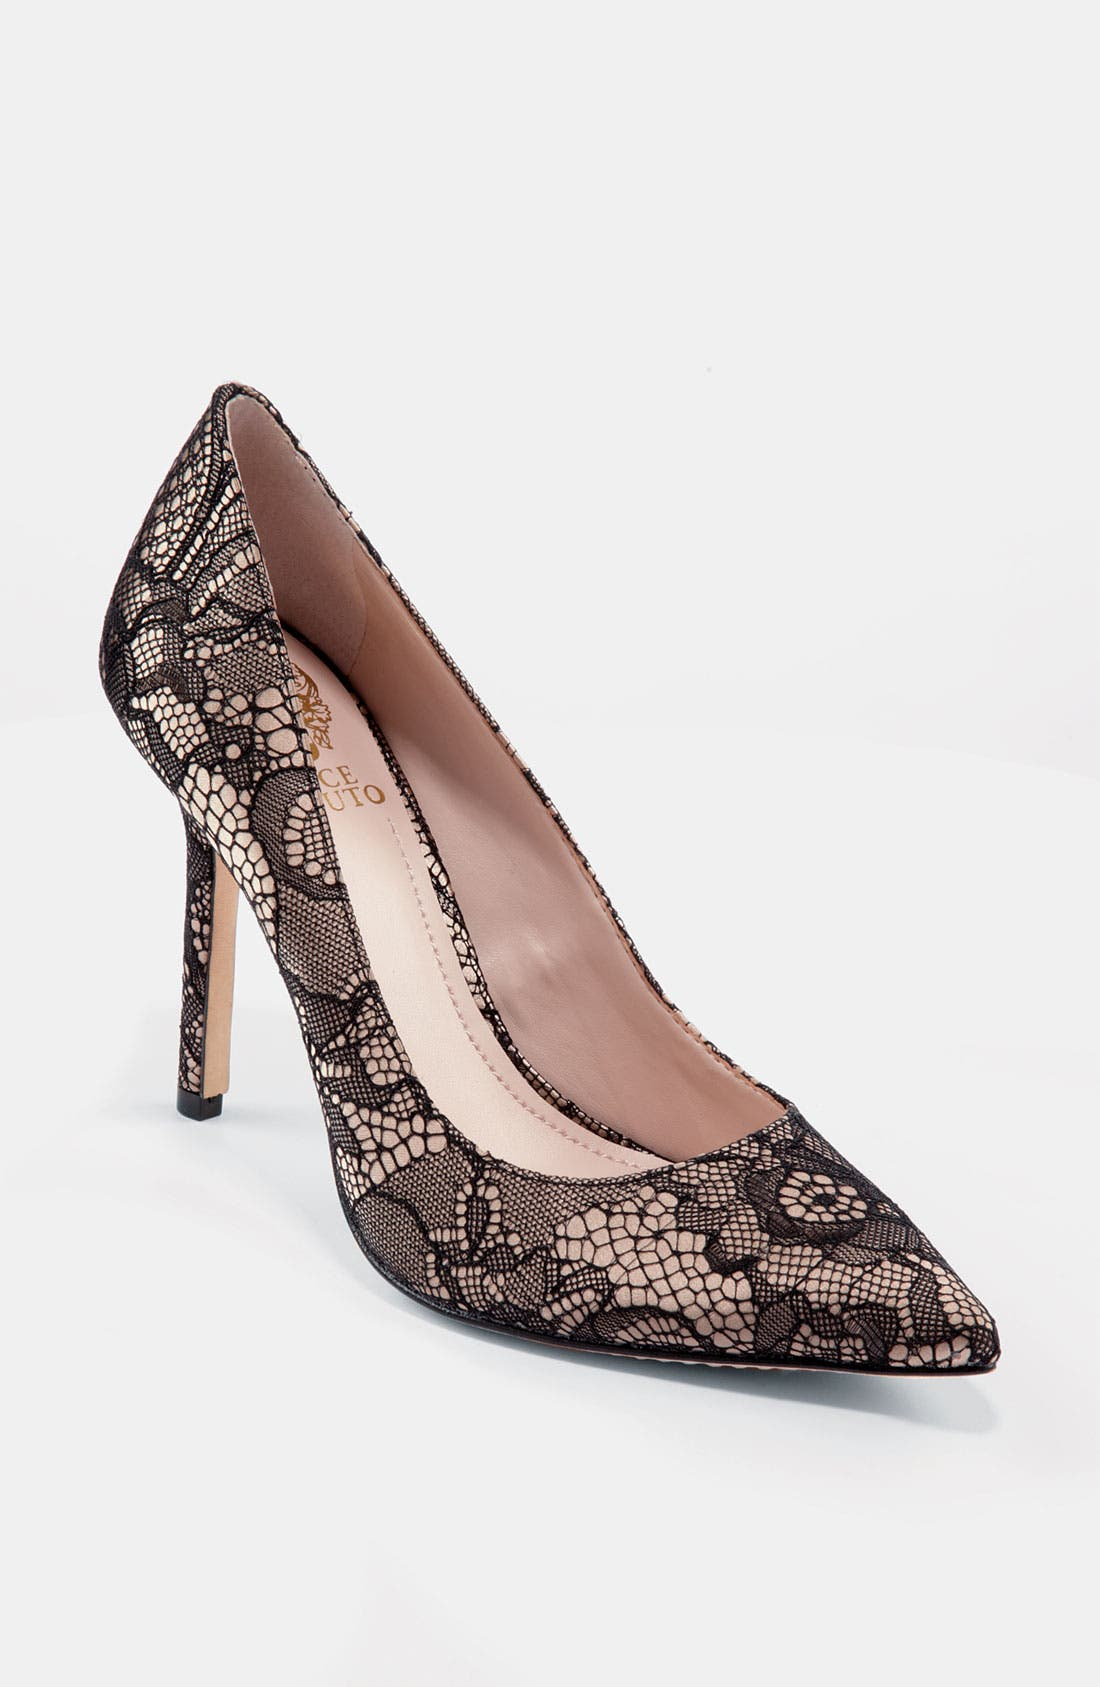 Alternate Image 1 Selected - Vince Camuto 'Harty' Pump